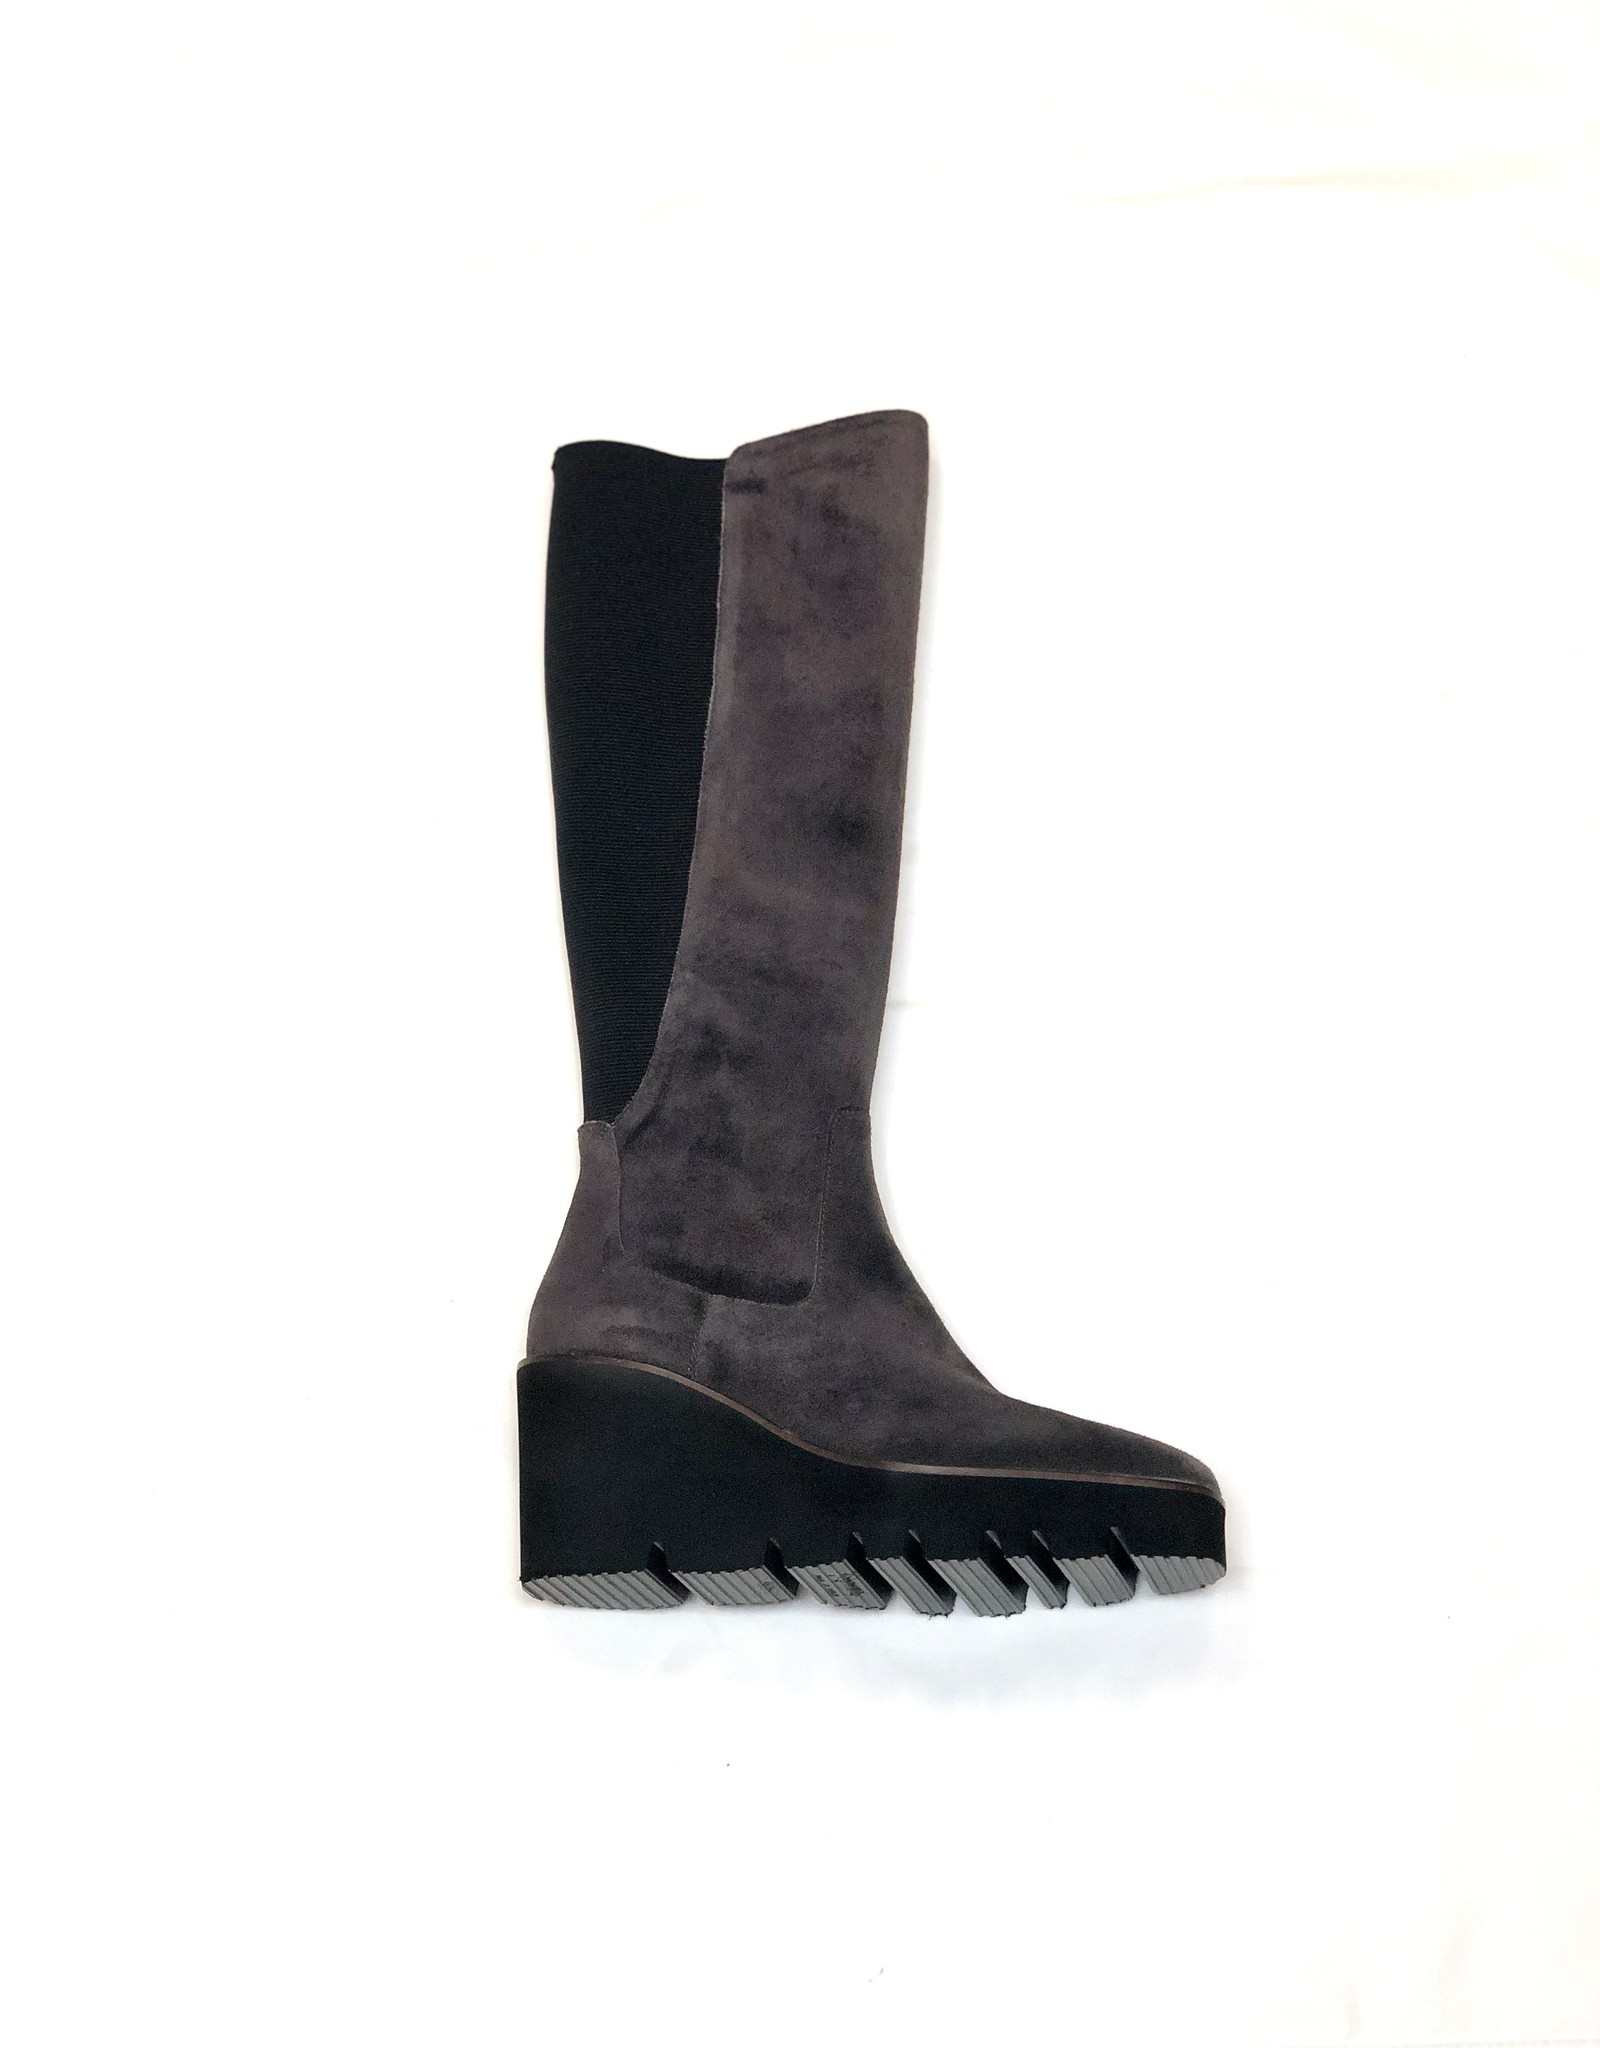 HOMERS Lavagna Suede Knee Boot